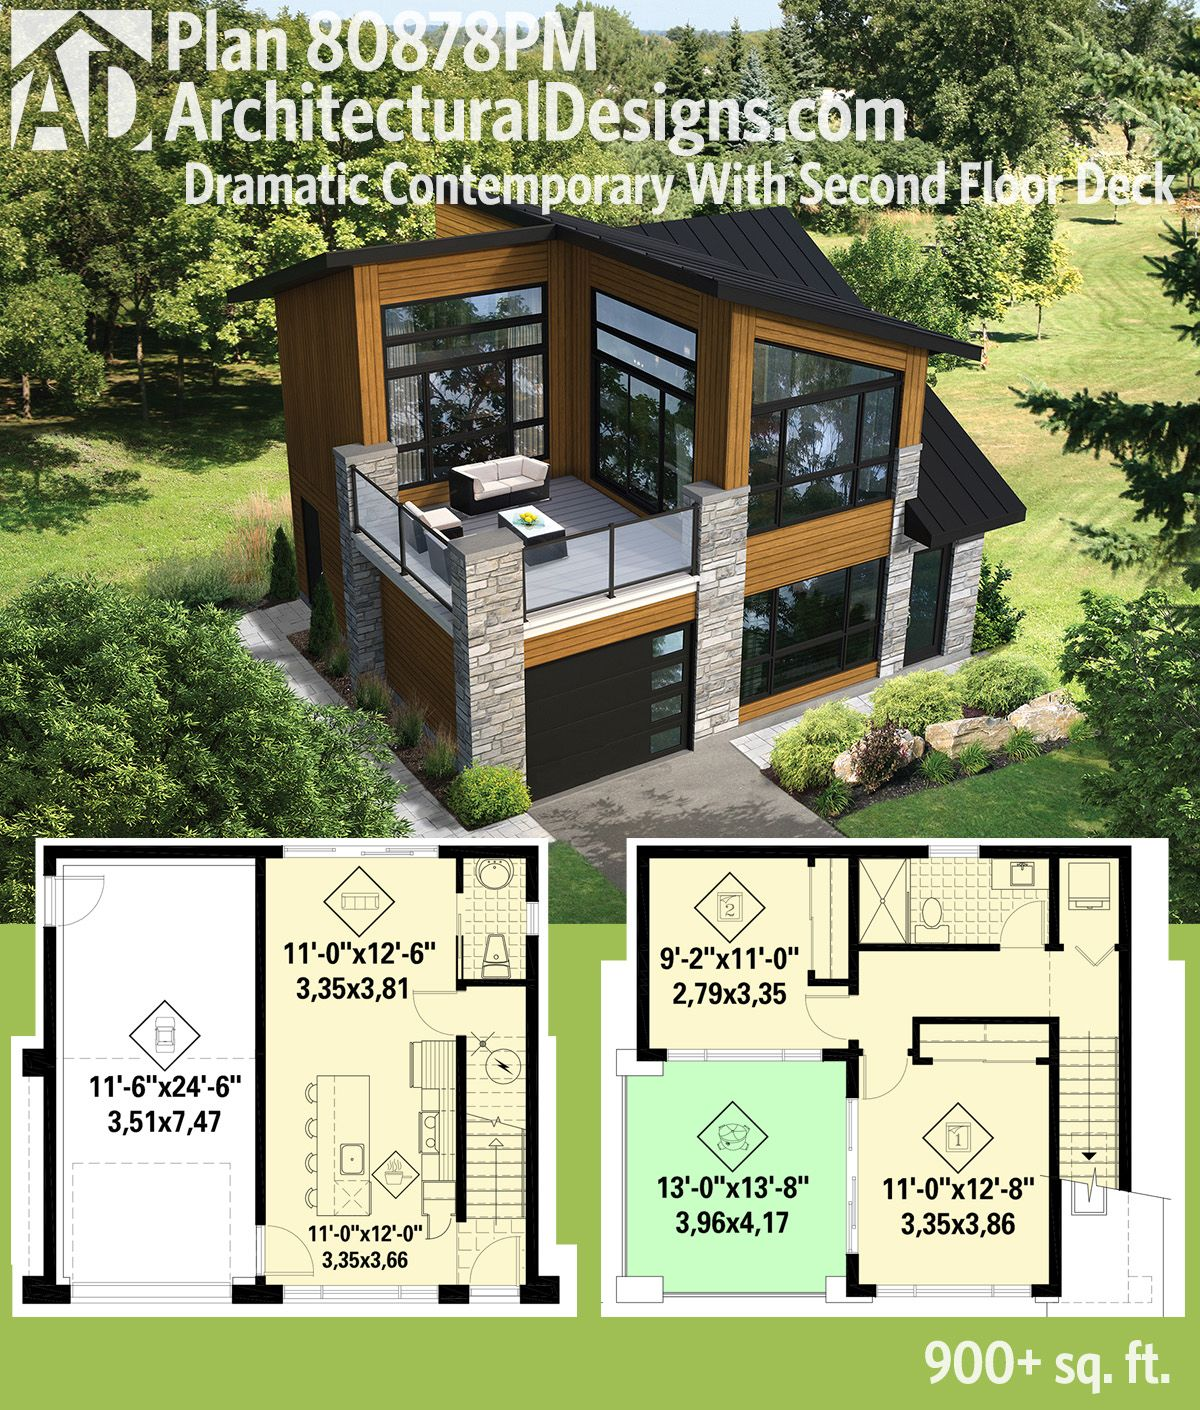 Plan 80878pm dramatic contemporary with second floor deck for Small contemporary home plans